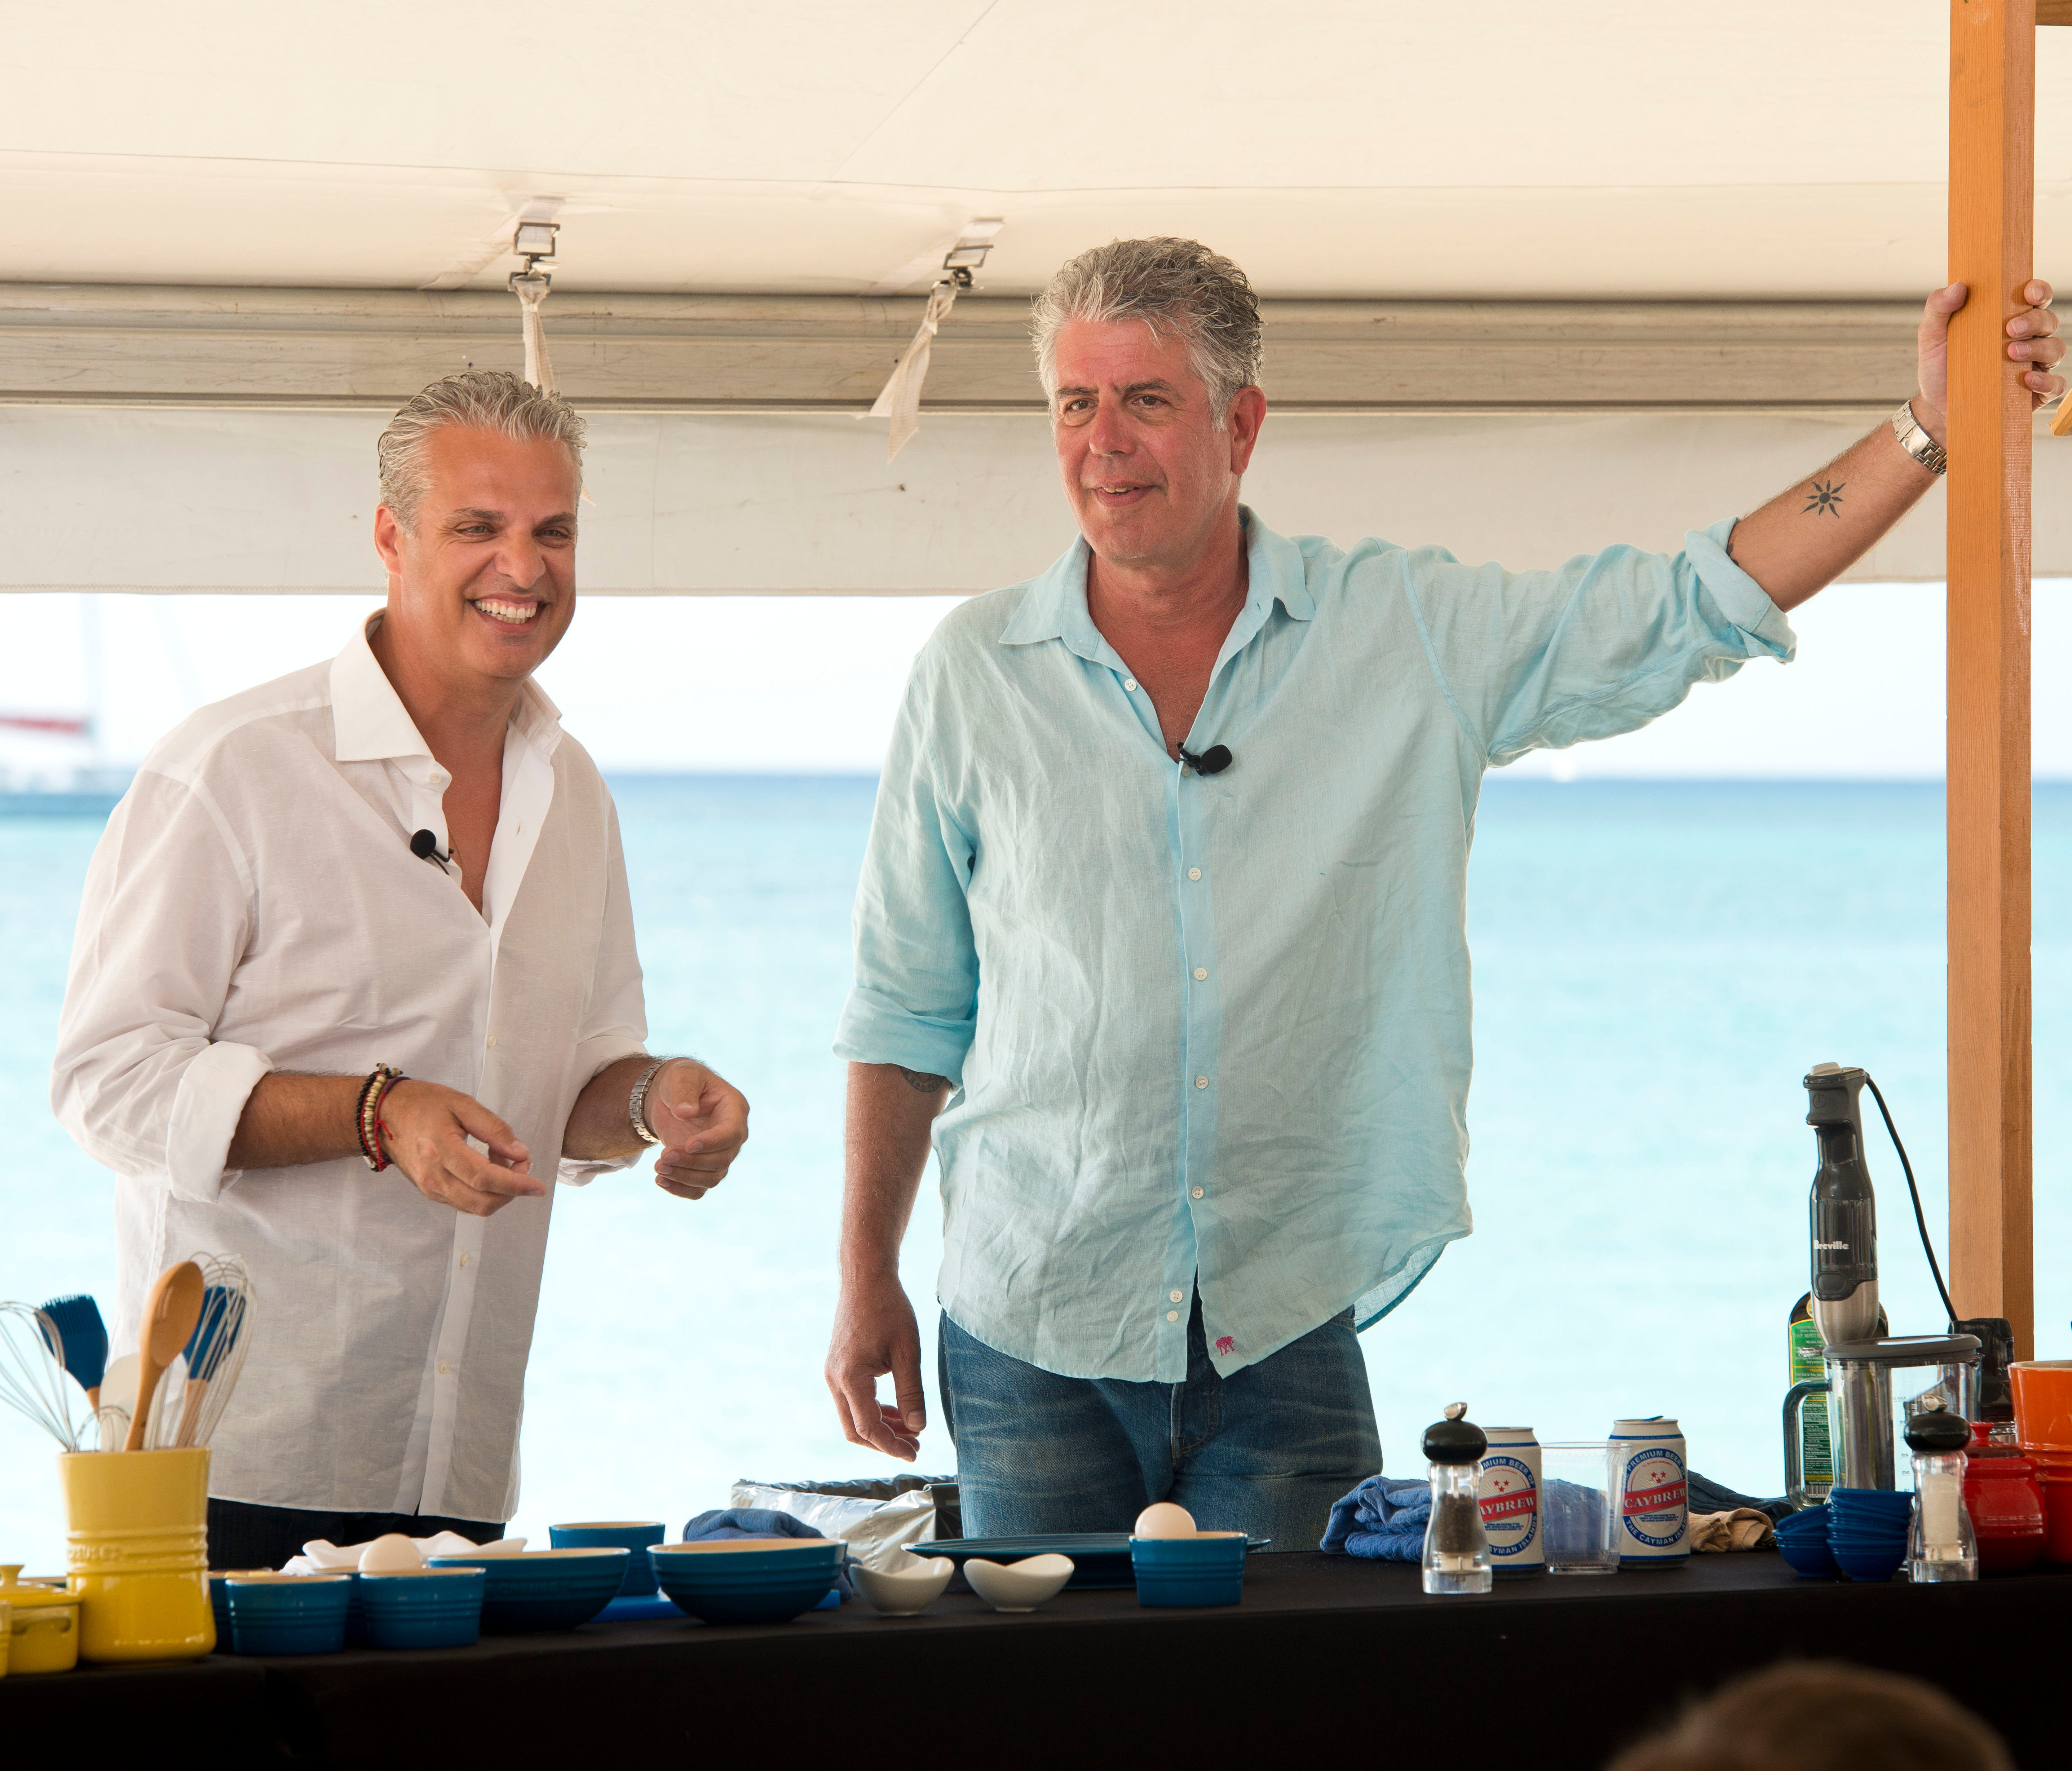 Chefs Anthony Bourdain (right) and Eric Ripert host a cooking demonstration at the annual Cayman Cookout festival.